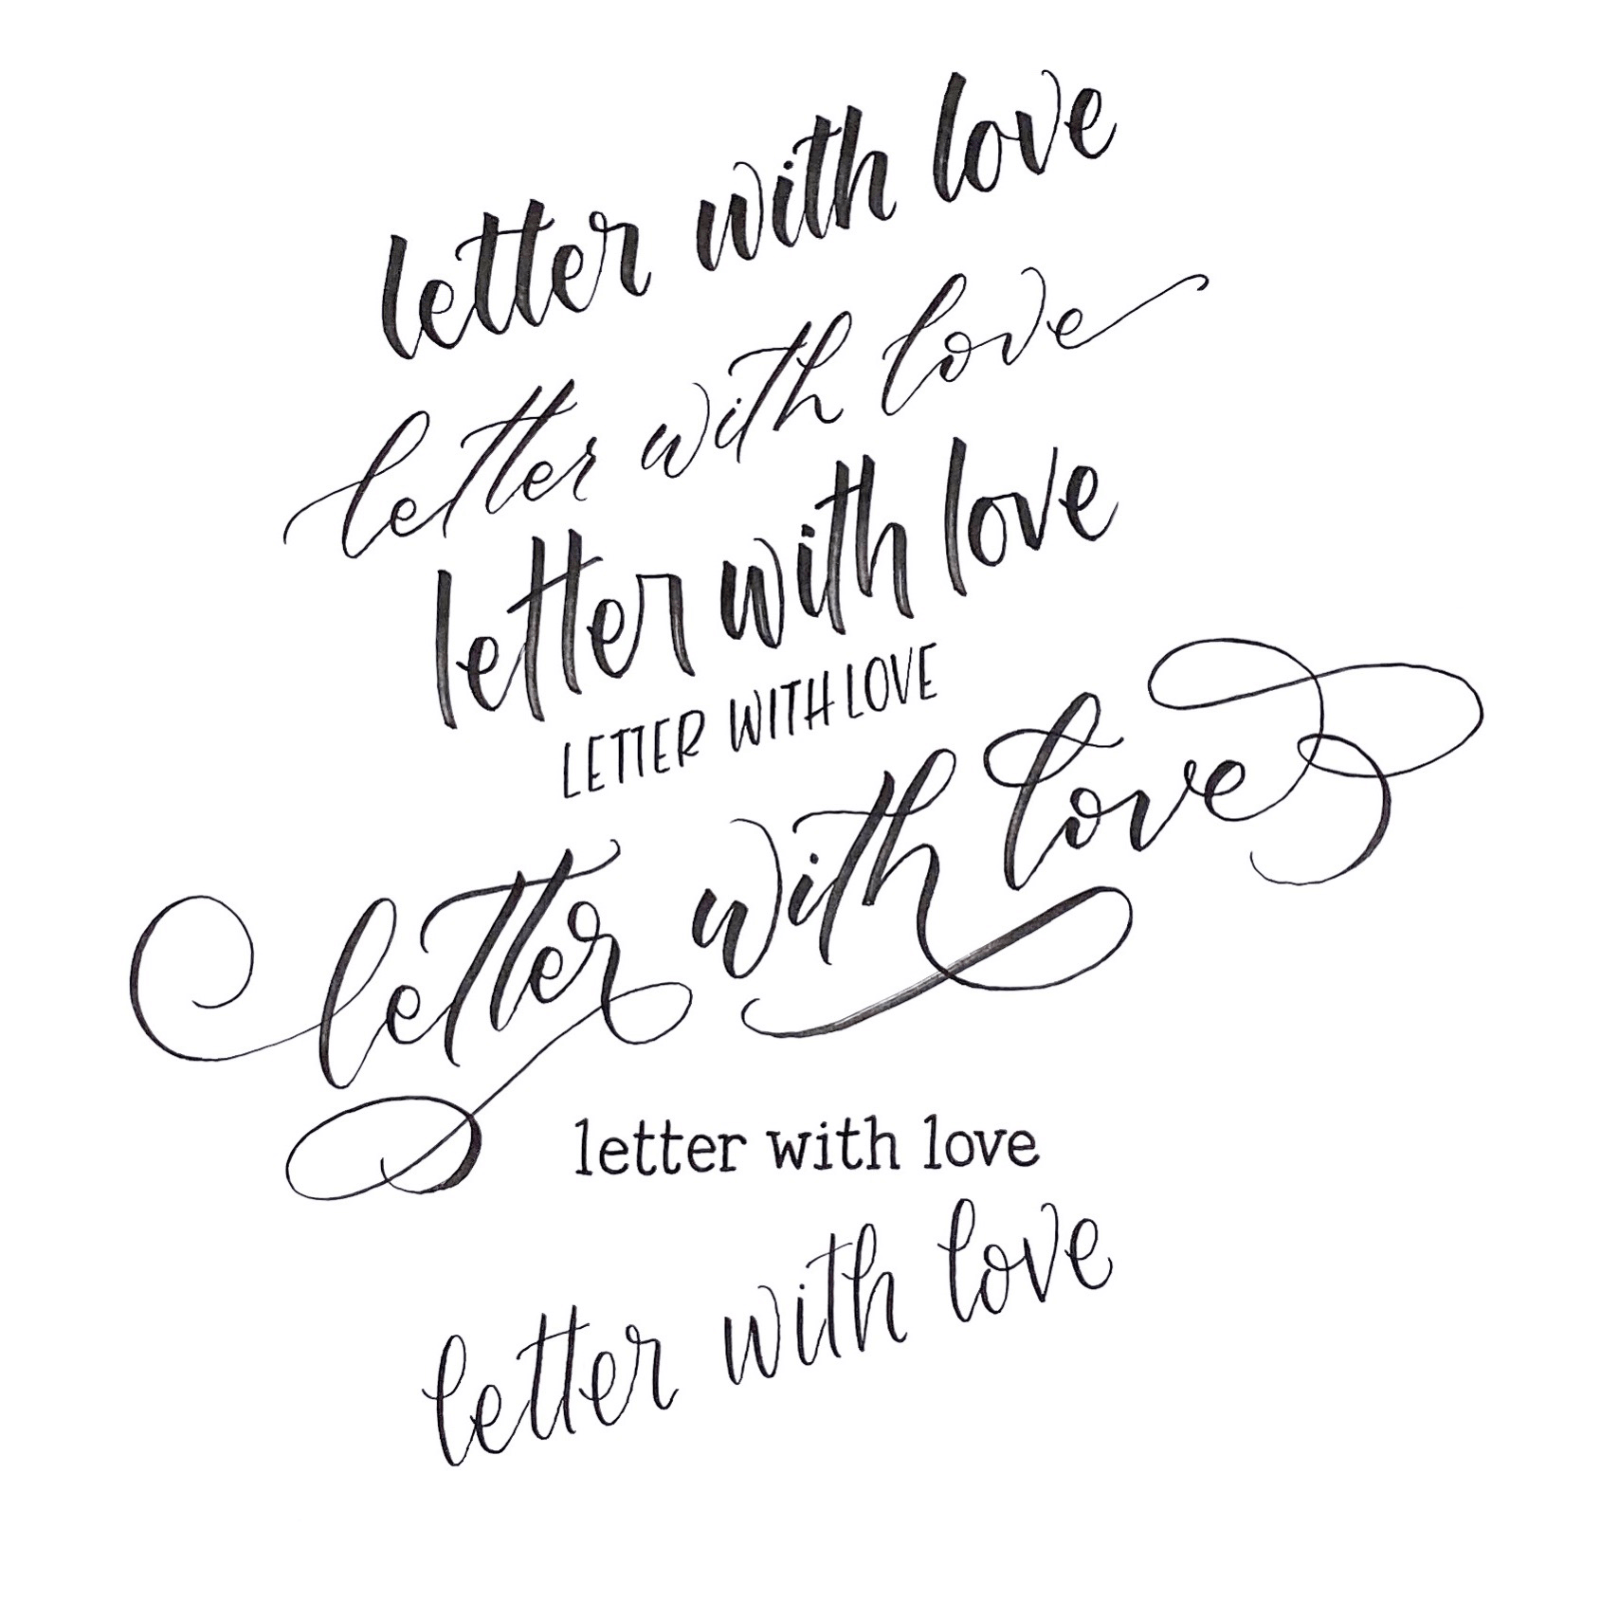 Letter With Love - Jessica Connelly